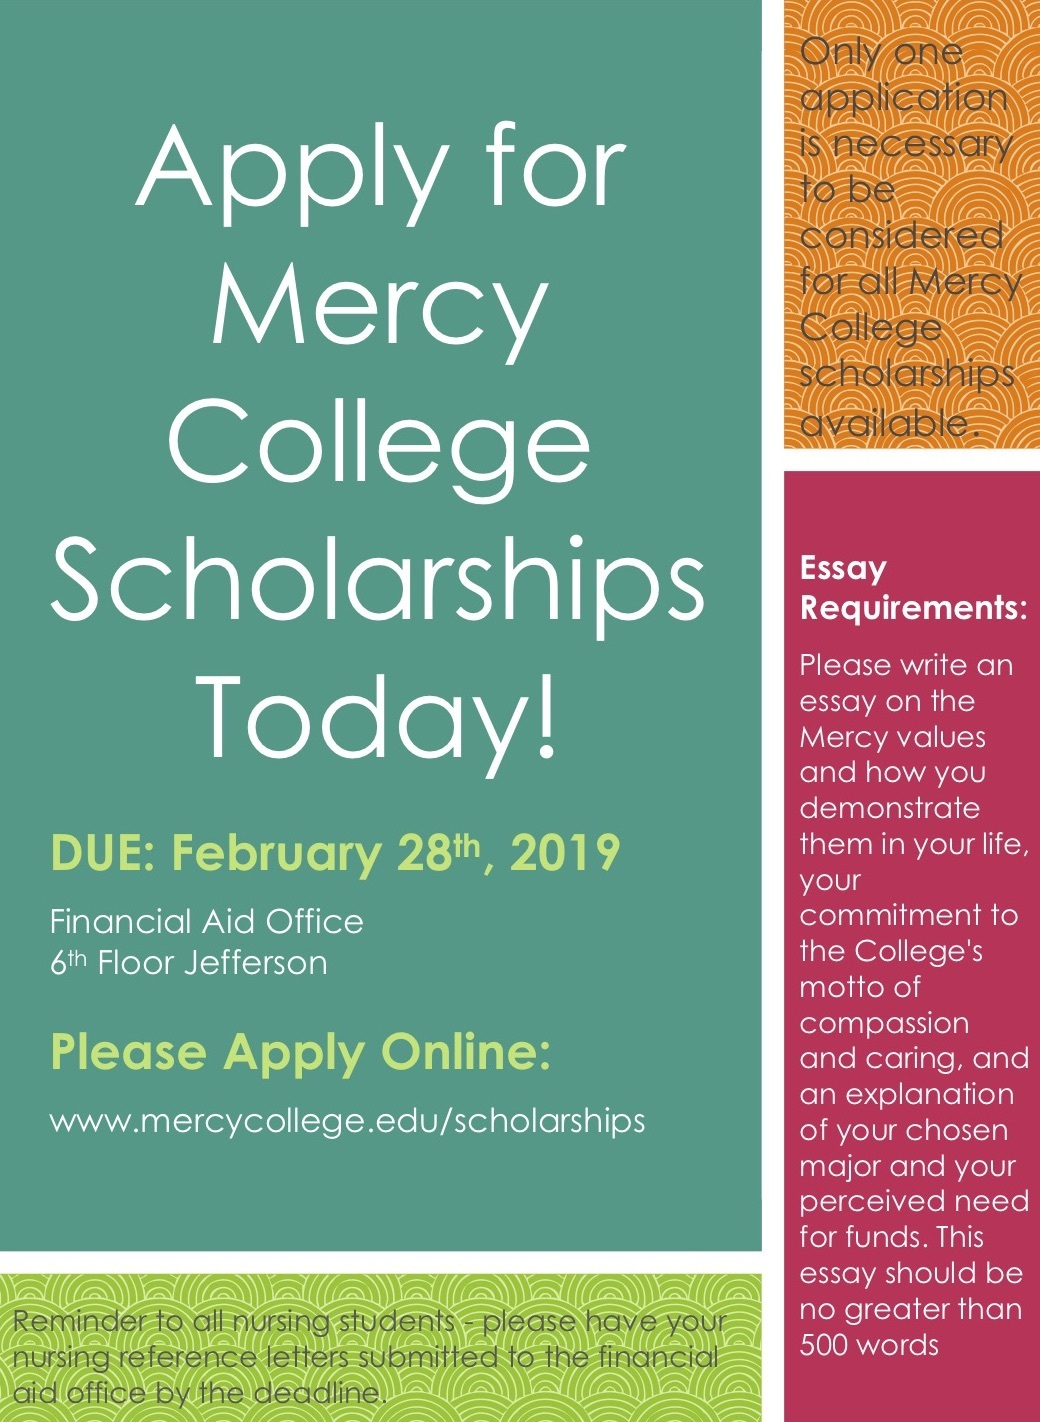 Apply For Mercy College Scholarships Today